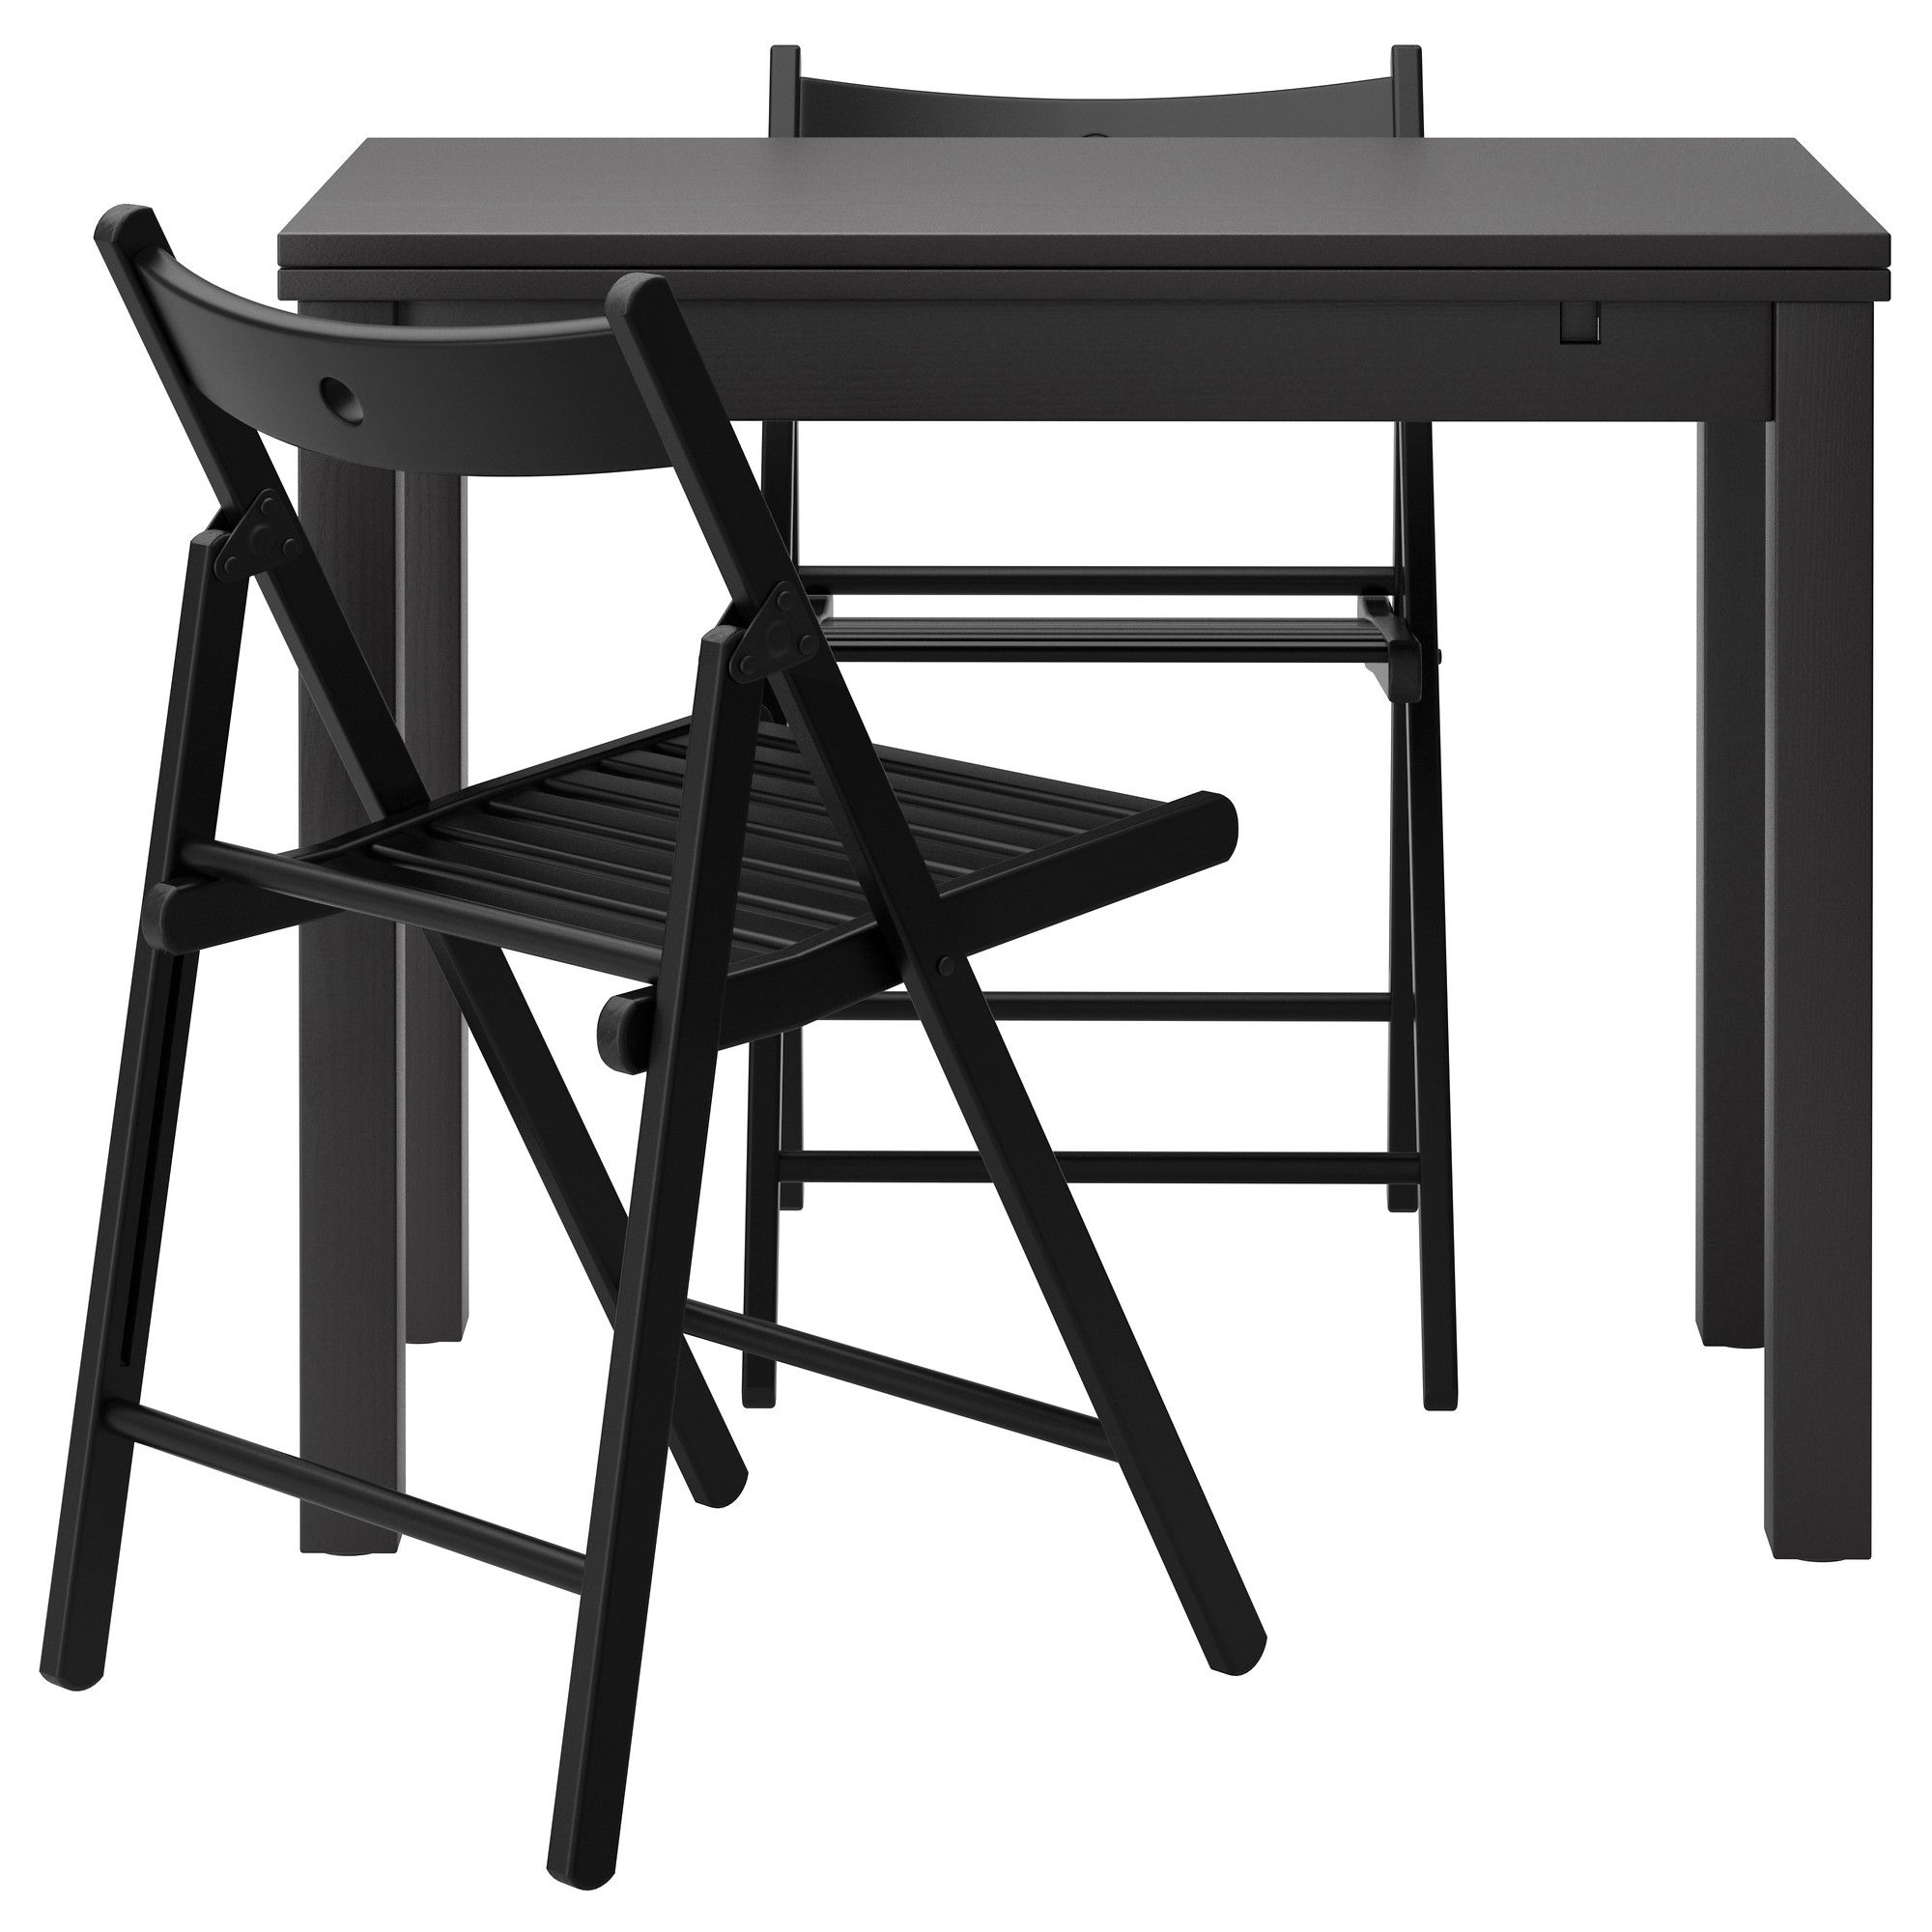 black furniture ikea. BJURSTATERJE Table And 2 Chairs IKEA 13498 Black Furniture Ikea